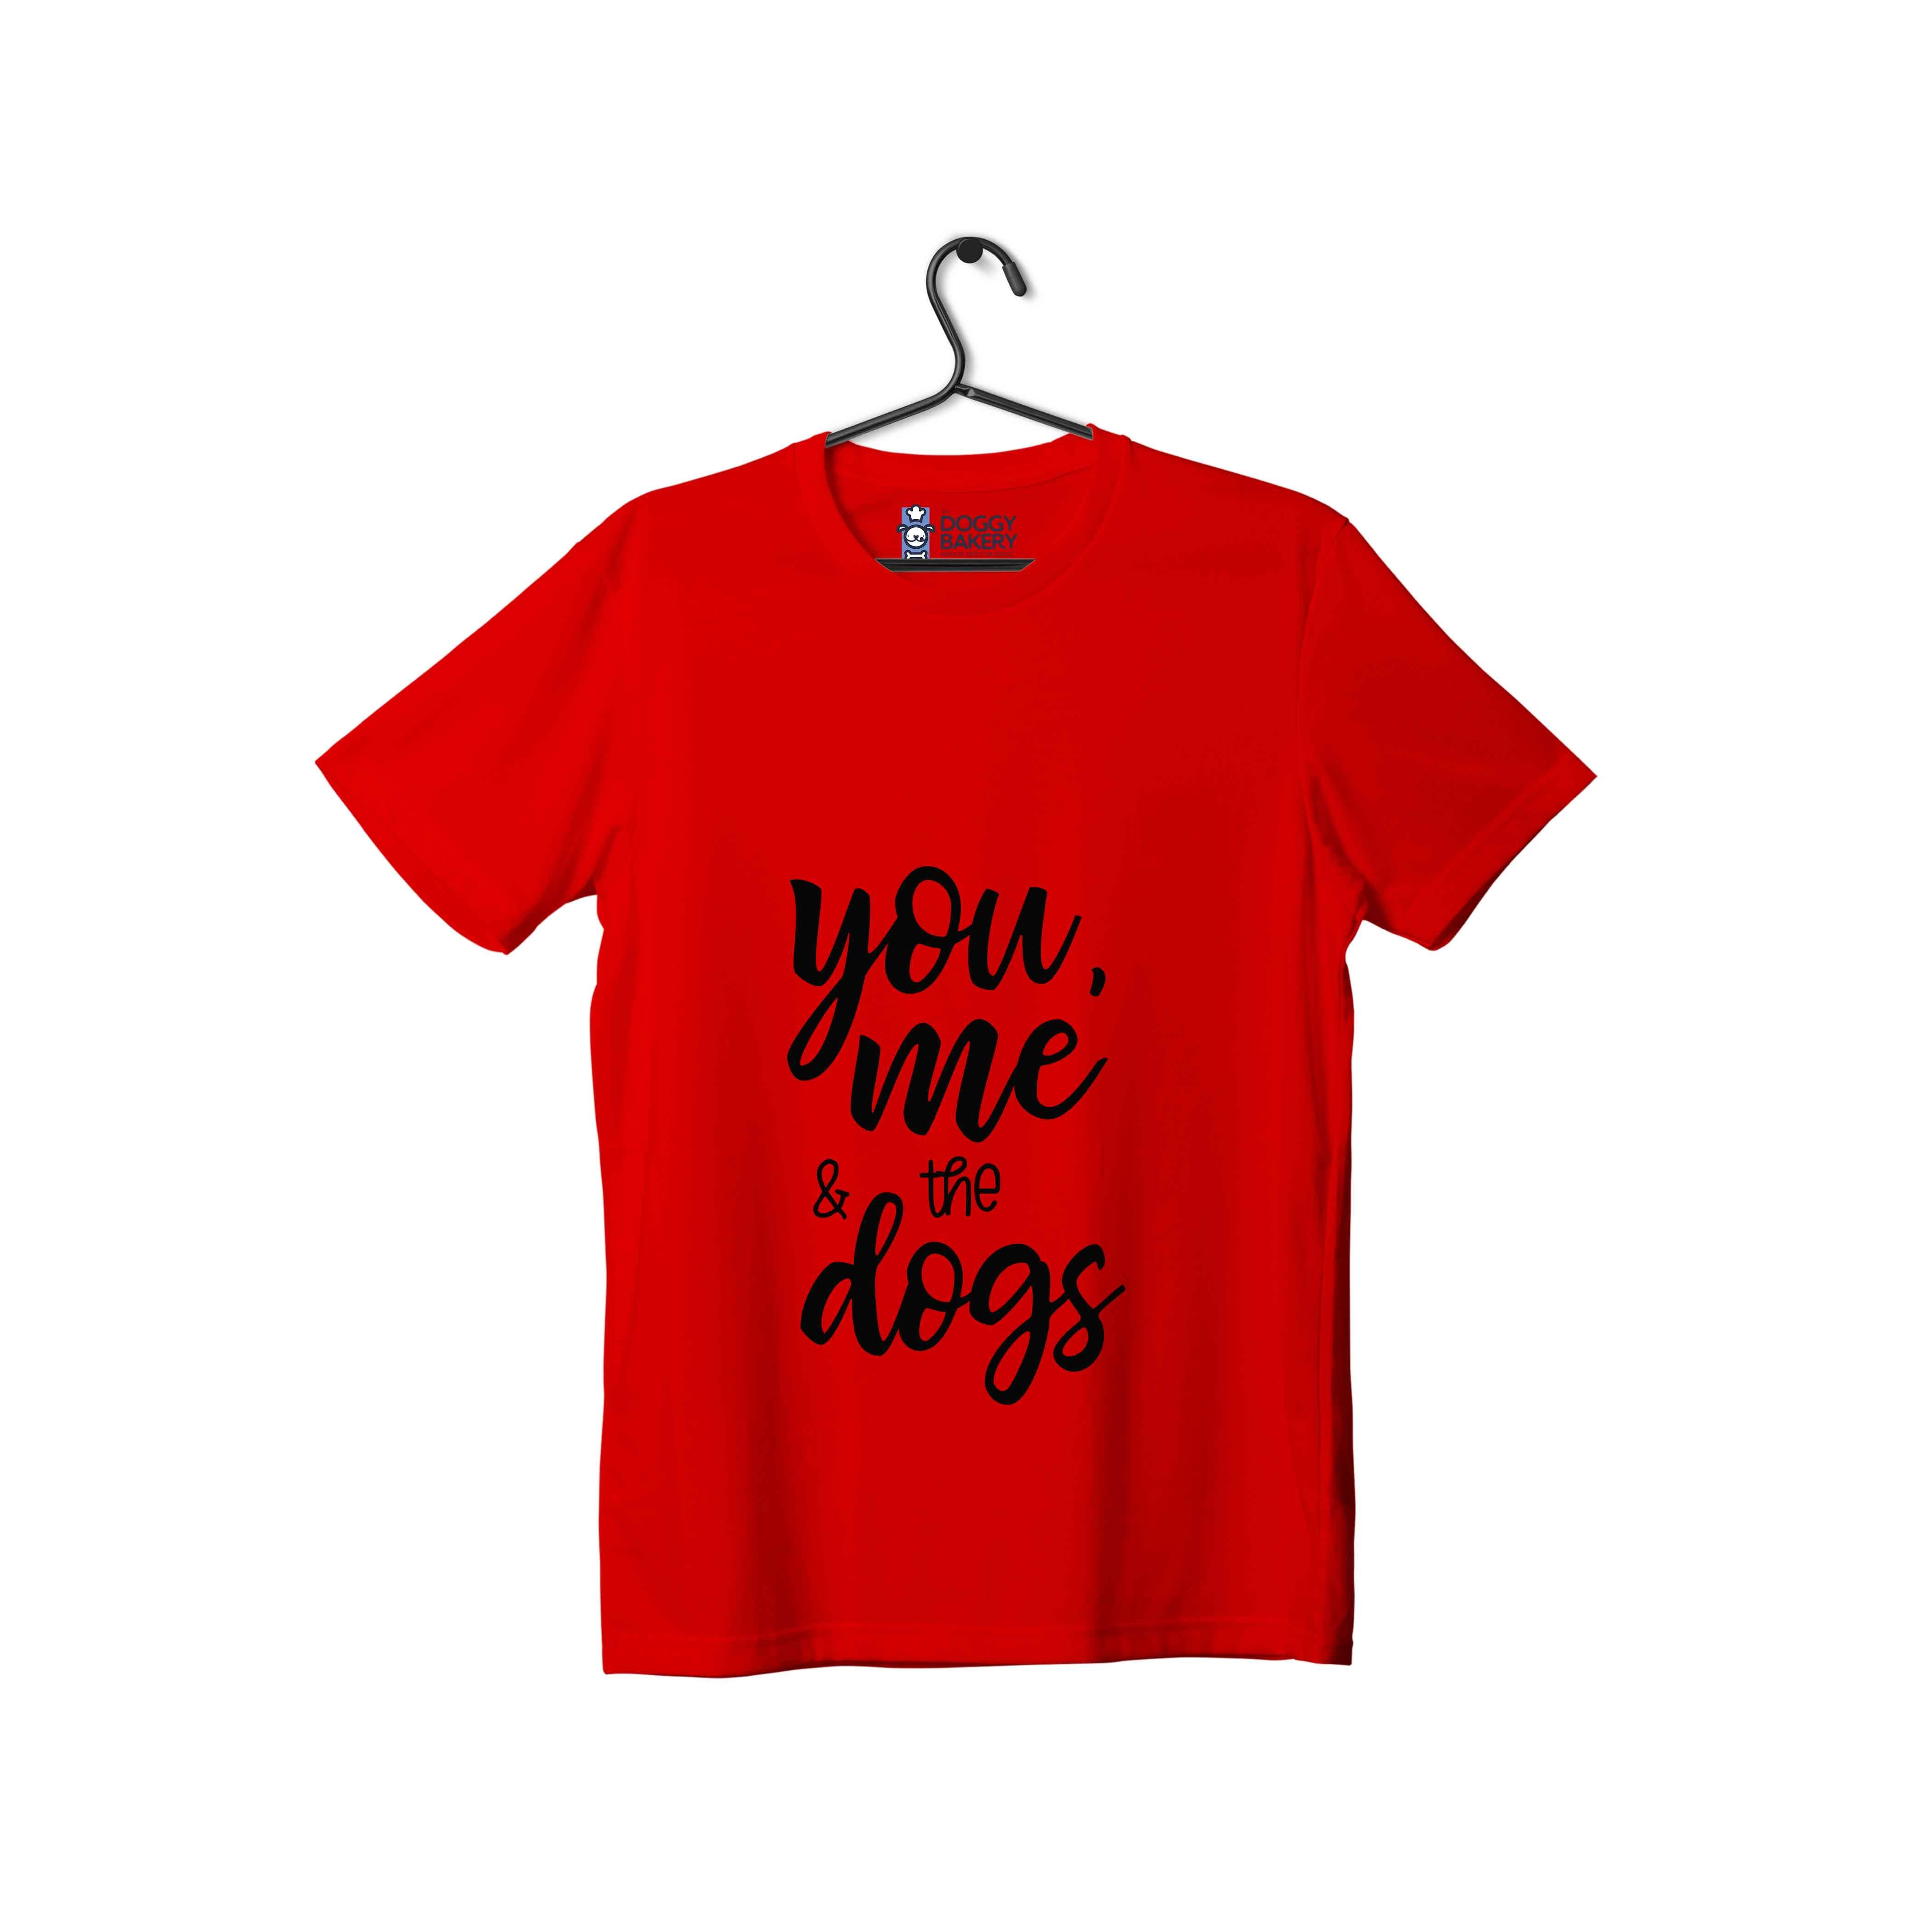 Dogs & Me T-Shirt